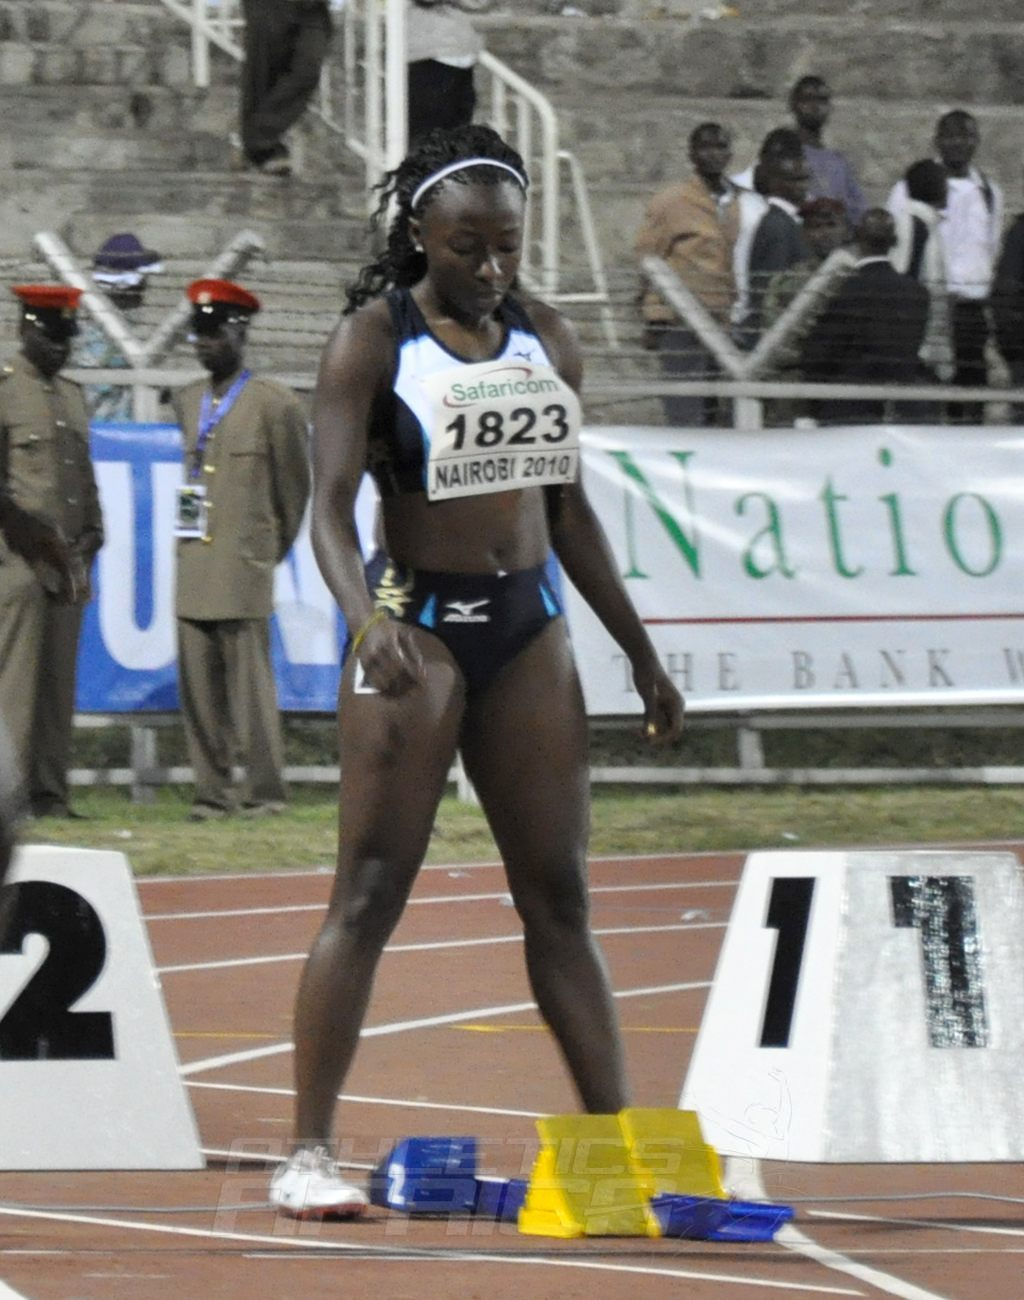 Liberia's Phobay Kutu-Akoi during the women's 100m semi-final at the 2010 African Senior Athletics Championships in Nairobi, Kenya / Photo Credit: Yomi Omogbeja